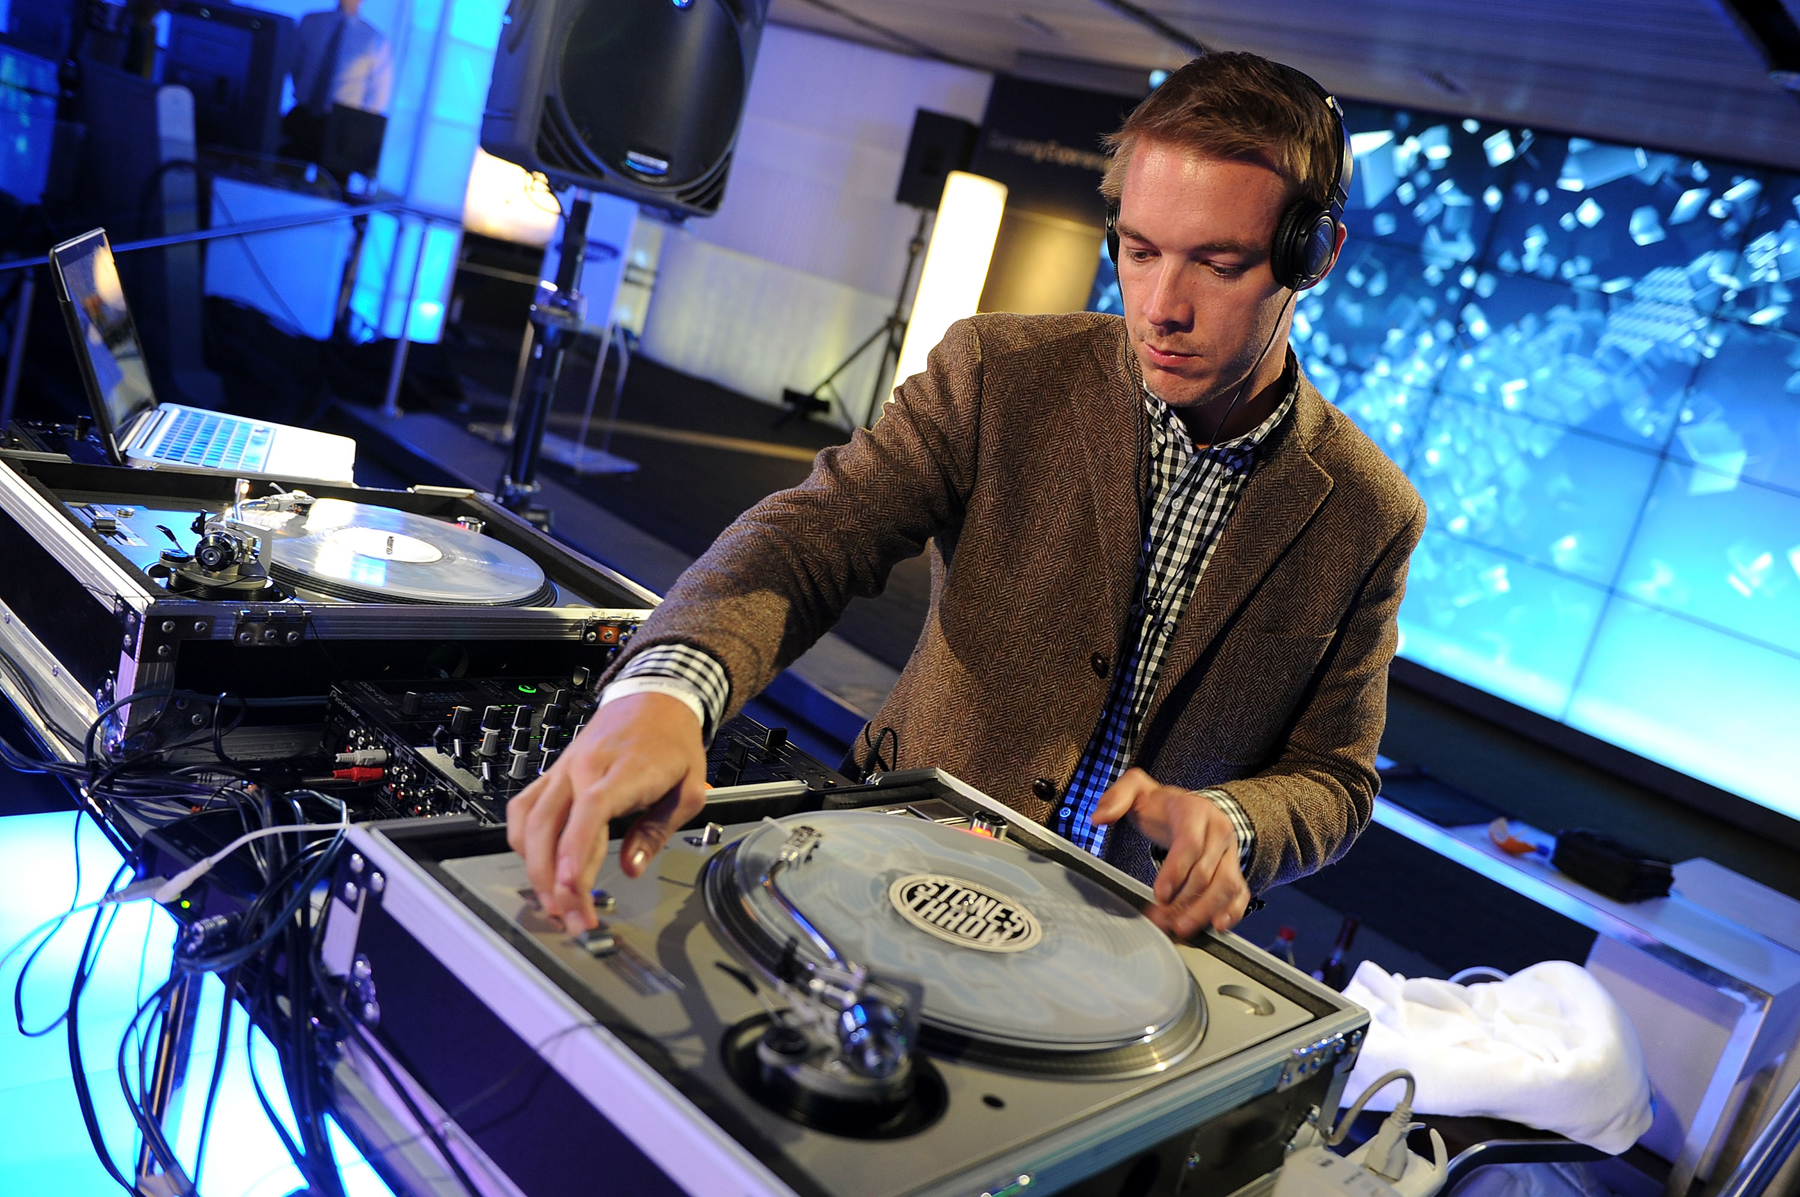 NEW YORK - MARCH 10:  DJ Diplo attends the Samsung 3D LED TV launch party with THE BLACK EYED PEAS at Time Warner Center on March 10, 2010 in New York City.  (Photo by Theo Wargo/Getty Images for Samsung) *** Local Caption *** DJ Diplo